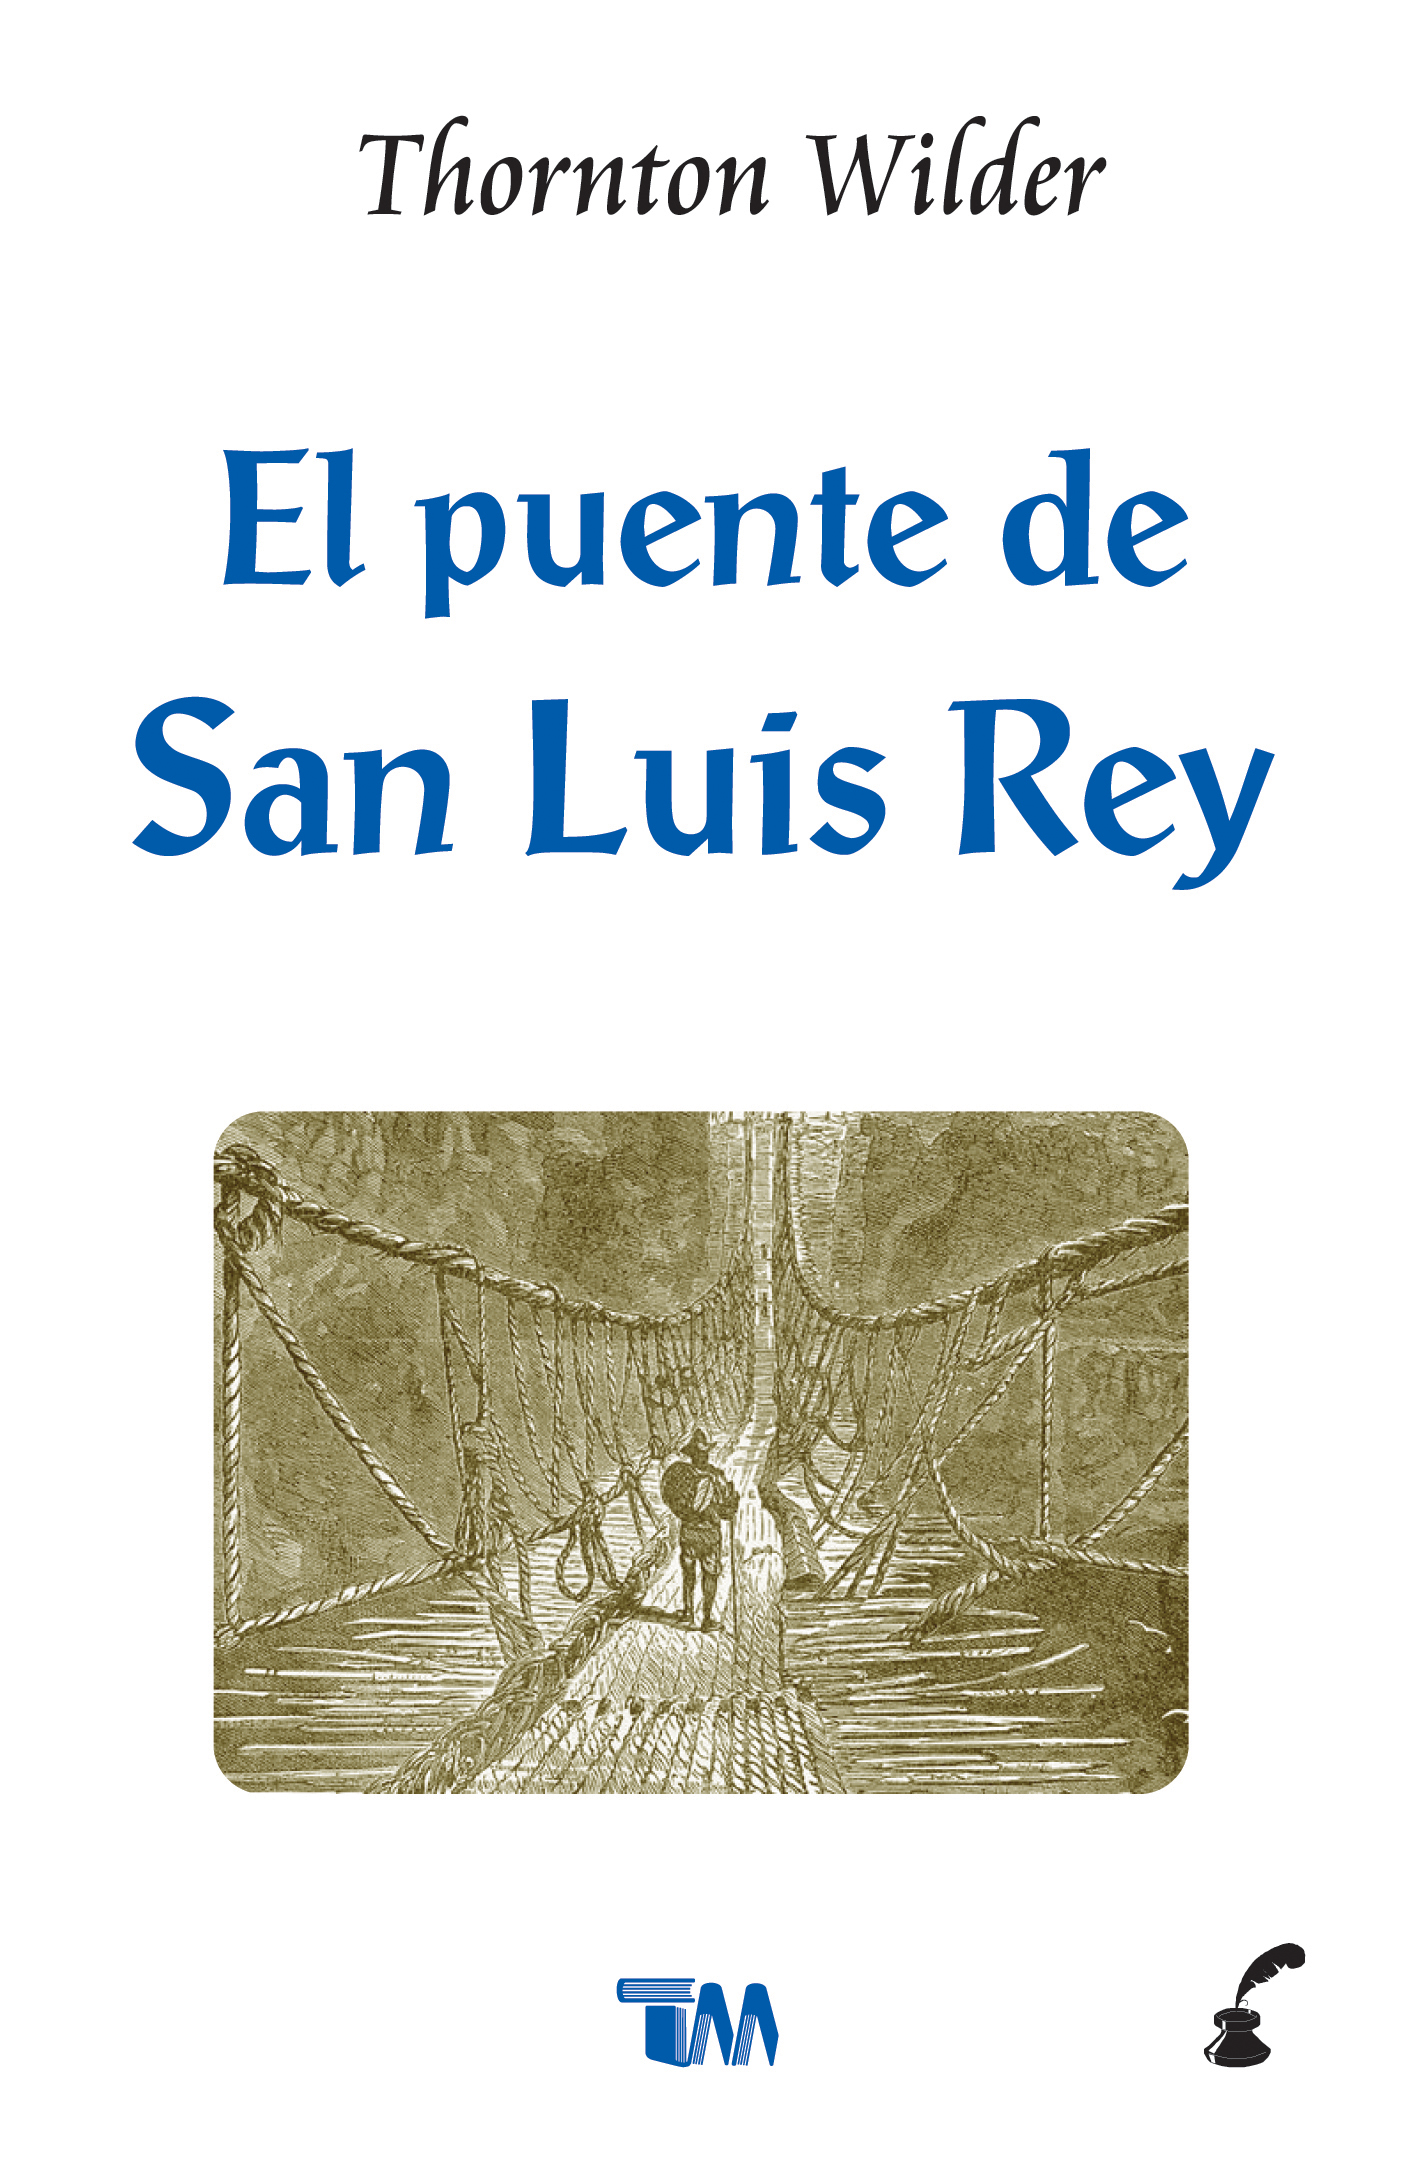 san luis rey christian personals Mission san luis rey parish is a diverse and multicultural catholic parish in the san luis rey valley of oceanside, california for over 200 years, our mission has been to welcome all who come and invite them to live the gospel of jesus christ.